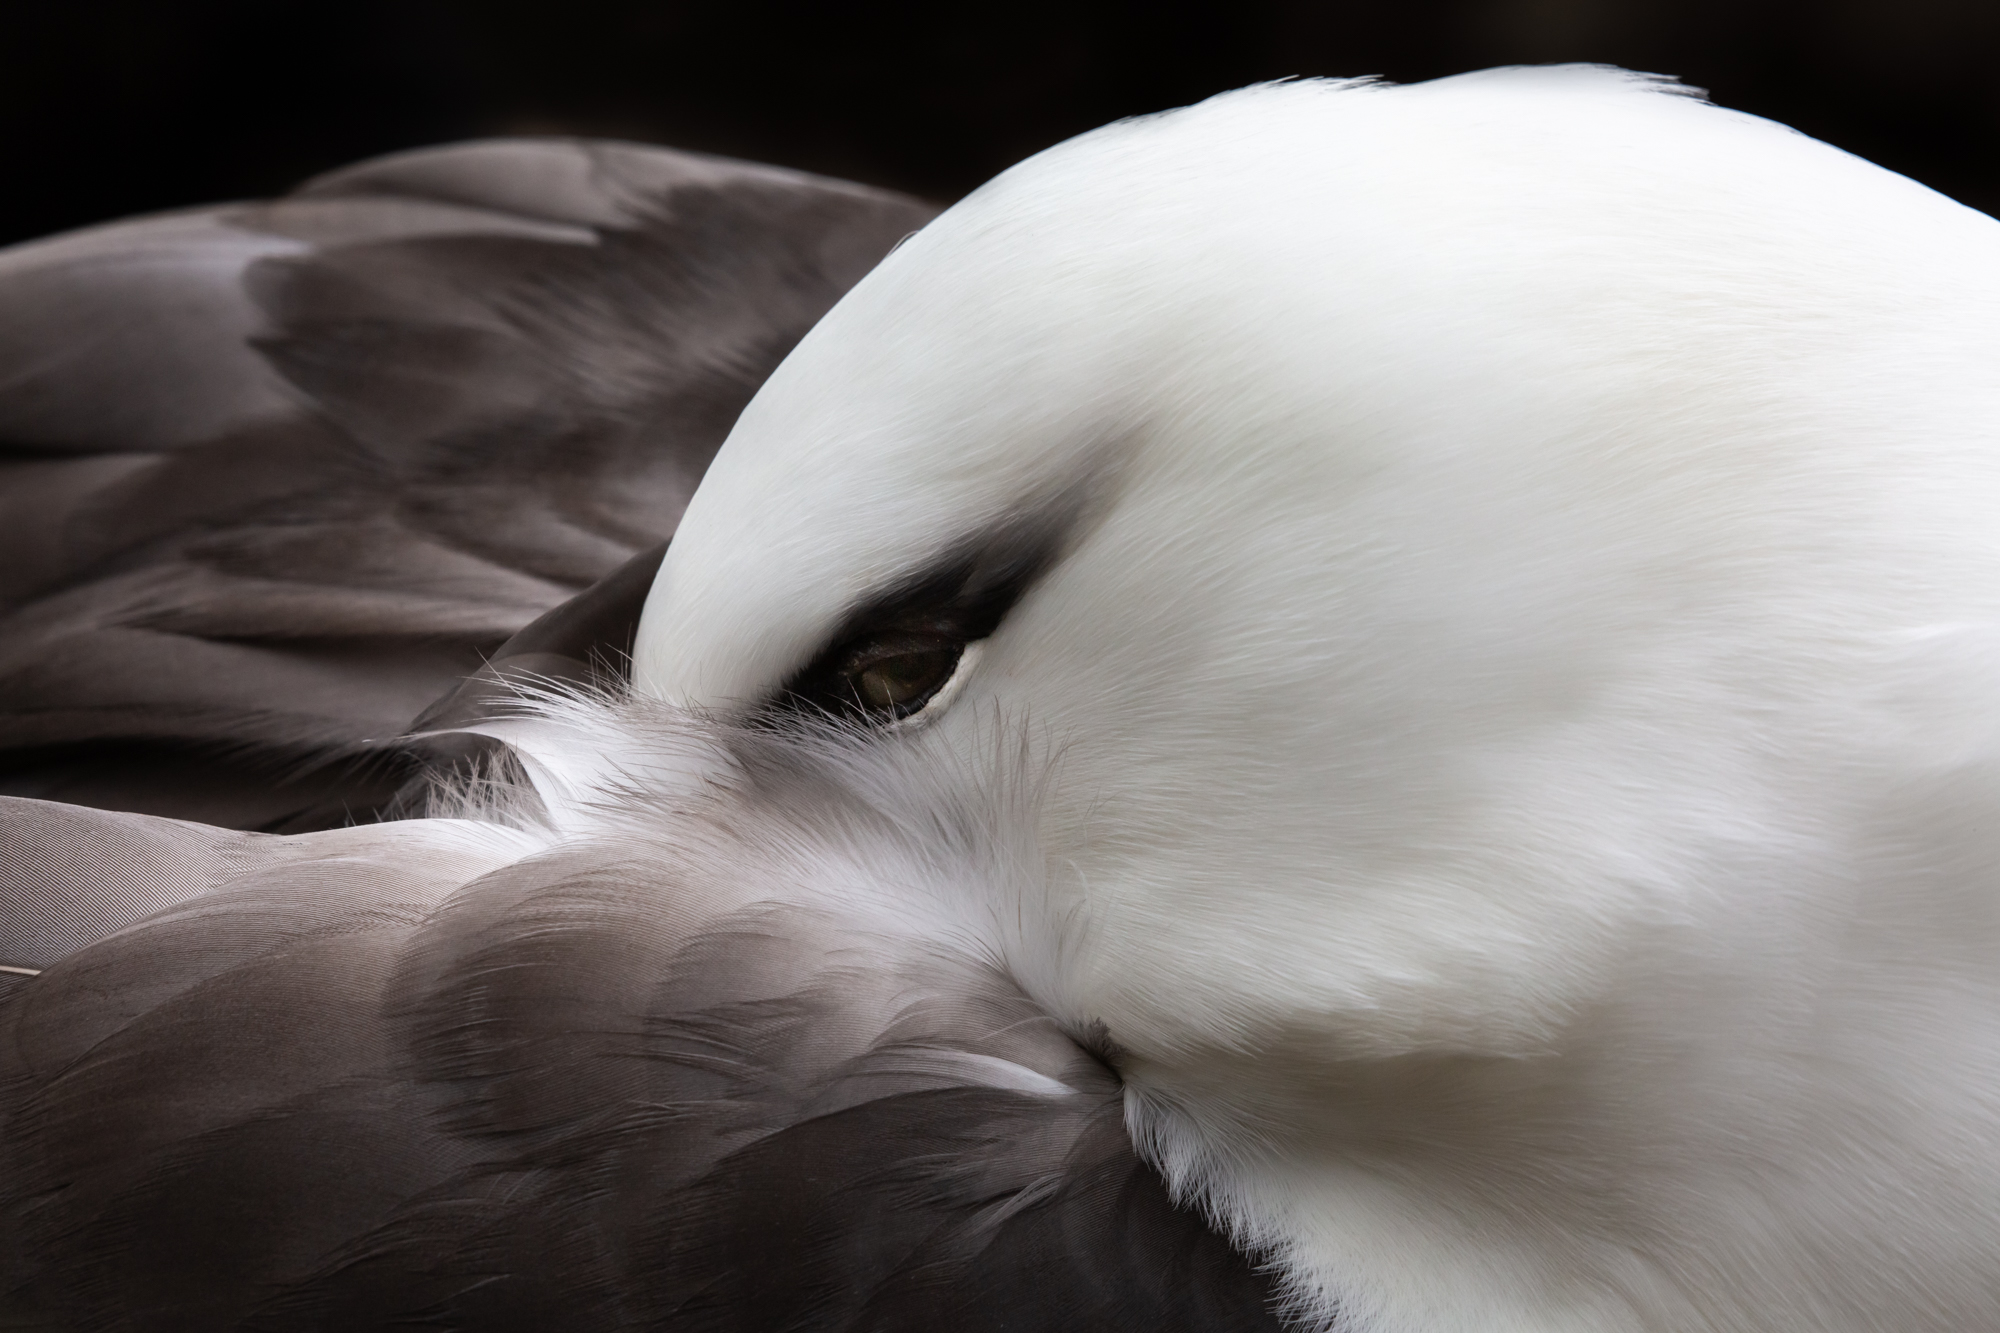 A nesting black-browed albatross tucks its head into its artfully elegant feathers while resting at a colony in the Falkland Islands.  These beautiful birds are struggling to stay afloat in battle against the long-line fishing industry which threatens to needlessly sink albatross populations into oblivion. With certain fishing practices, albatross species are attracted to fish bait and get caught in fish nets. By some estimates 100,000 albatross lose their lives to long-line fishing each year, making albatross the most threatened bird family in the world.  Albatross are long-lived/slow-maturing birds that pair with a single mate for life. As a result, the death of one or both birds in a pair has a lop-sided impact on future generations.  In the South Georgia Maritime Zone, fishing vessels are now regulated by a set of rules that make it possible for coexistence with little to no cost to fisheries. Though South Georgia's regulations have been successful at keeping the birds safe, albatross are incredibly mobile birds that travel thousands of miles across the ocean. Ensuring a future of these spectacular birds means shifting the international industry towards a new mindset of conservation and stewardship.